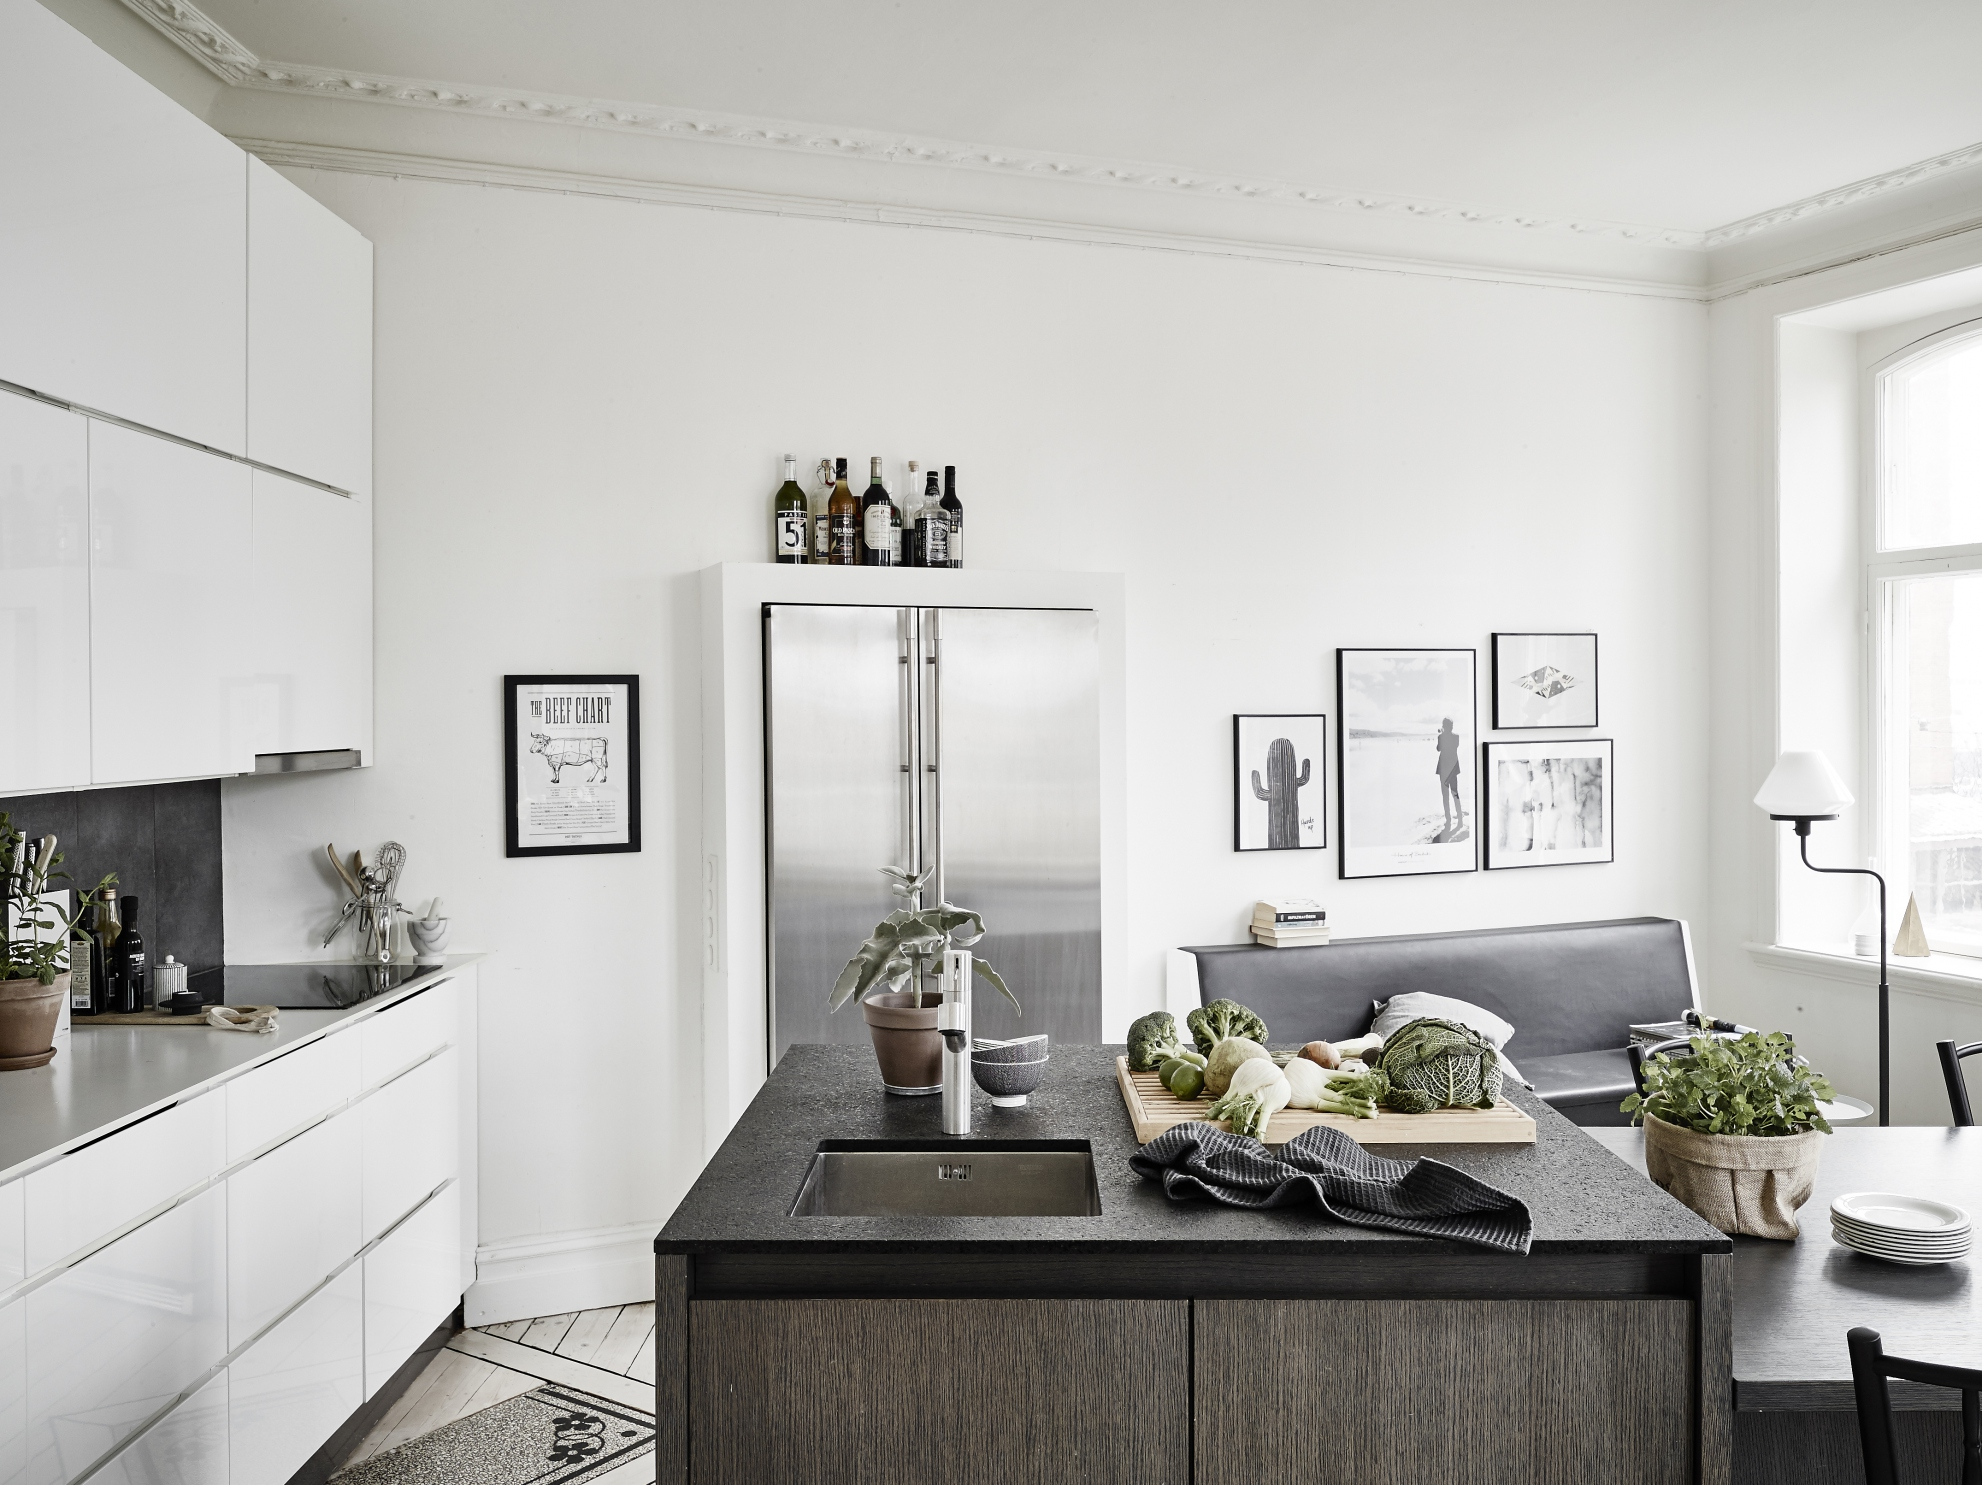 Smalle Moderne Keuken Small Apartment With A Big Kitchen Island Coco Lapine